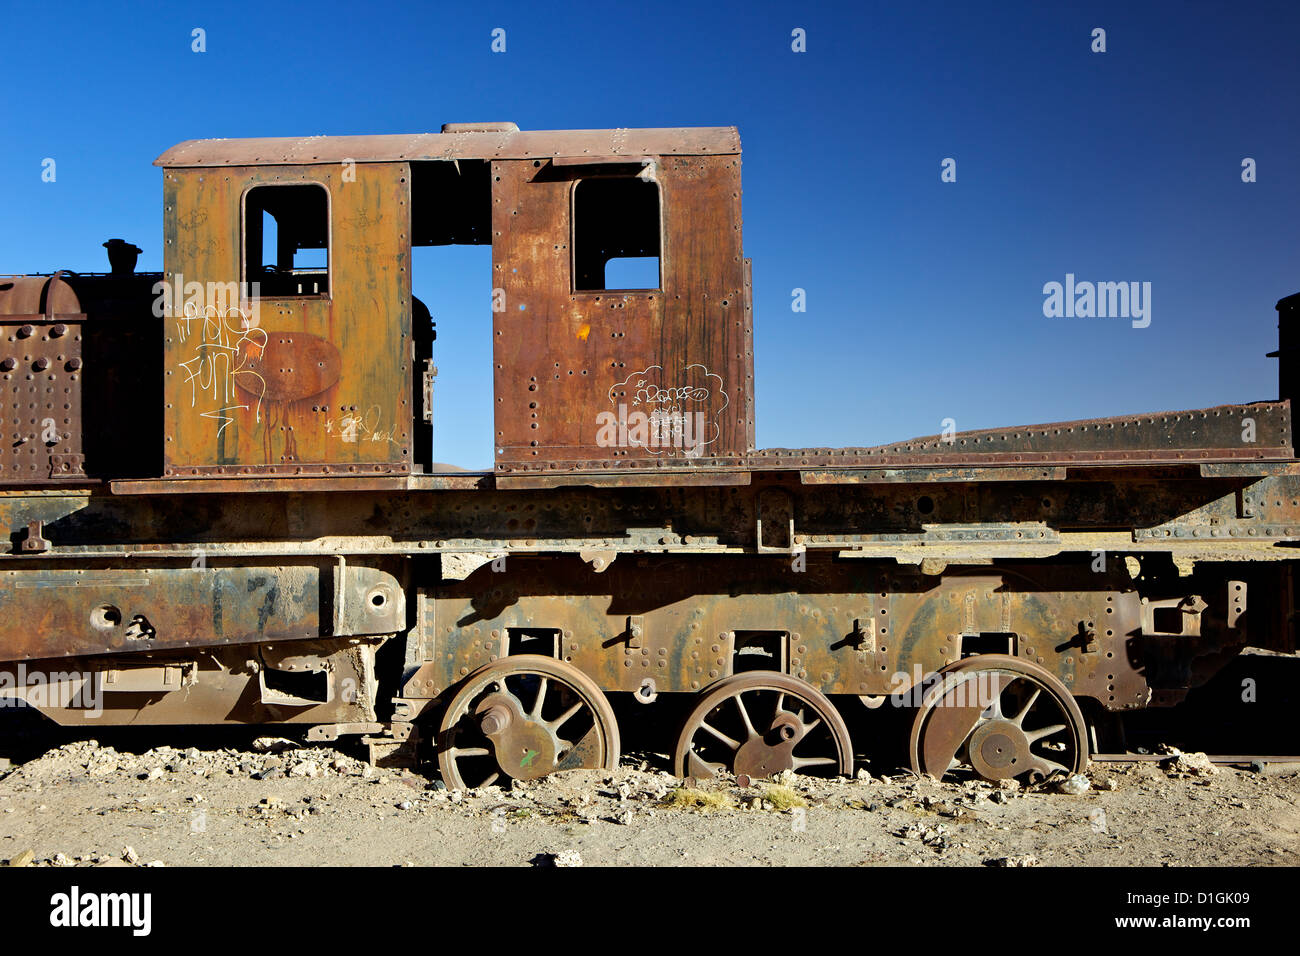 Rusting old steam locomotives at the Train cemetery (train graveyard), Uyuni, Southwest, Bolivia, South America - Stock Image